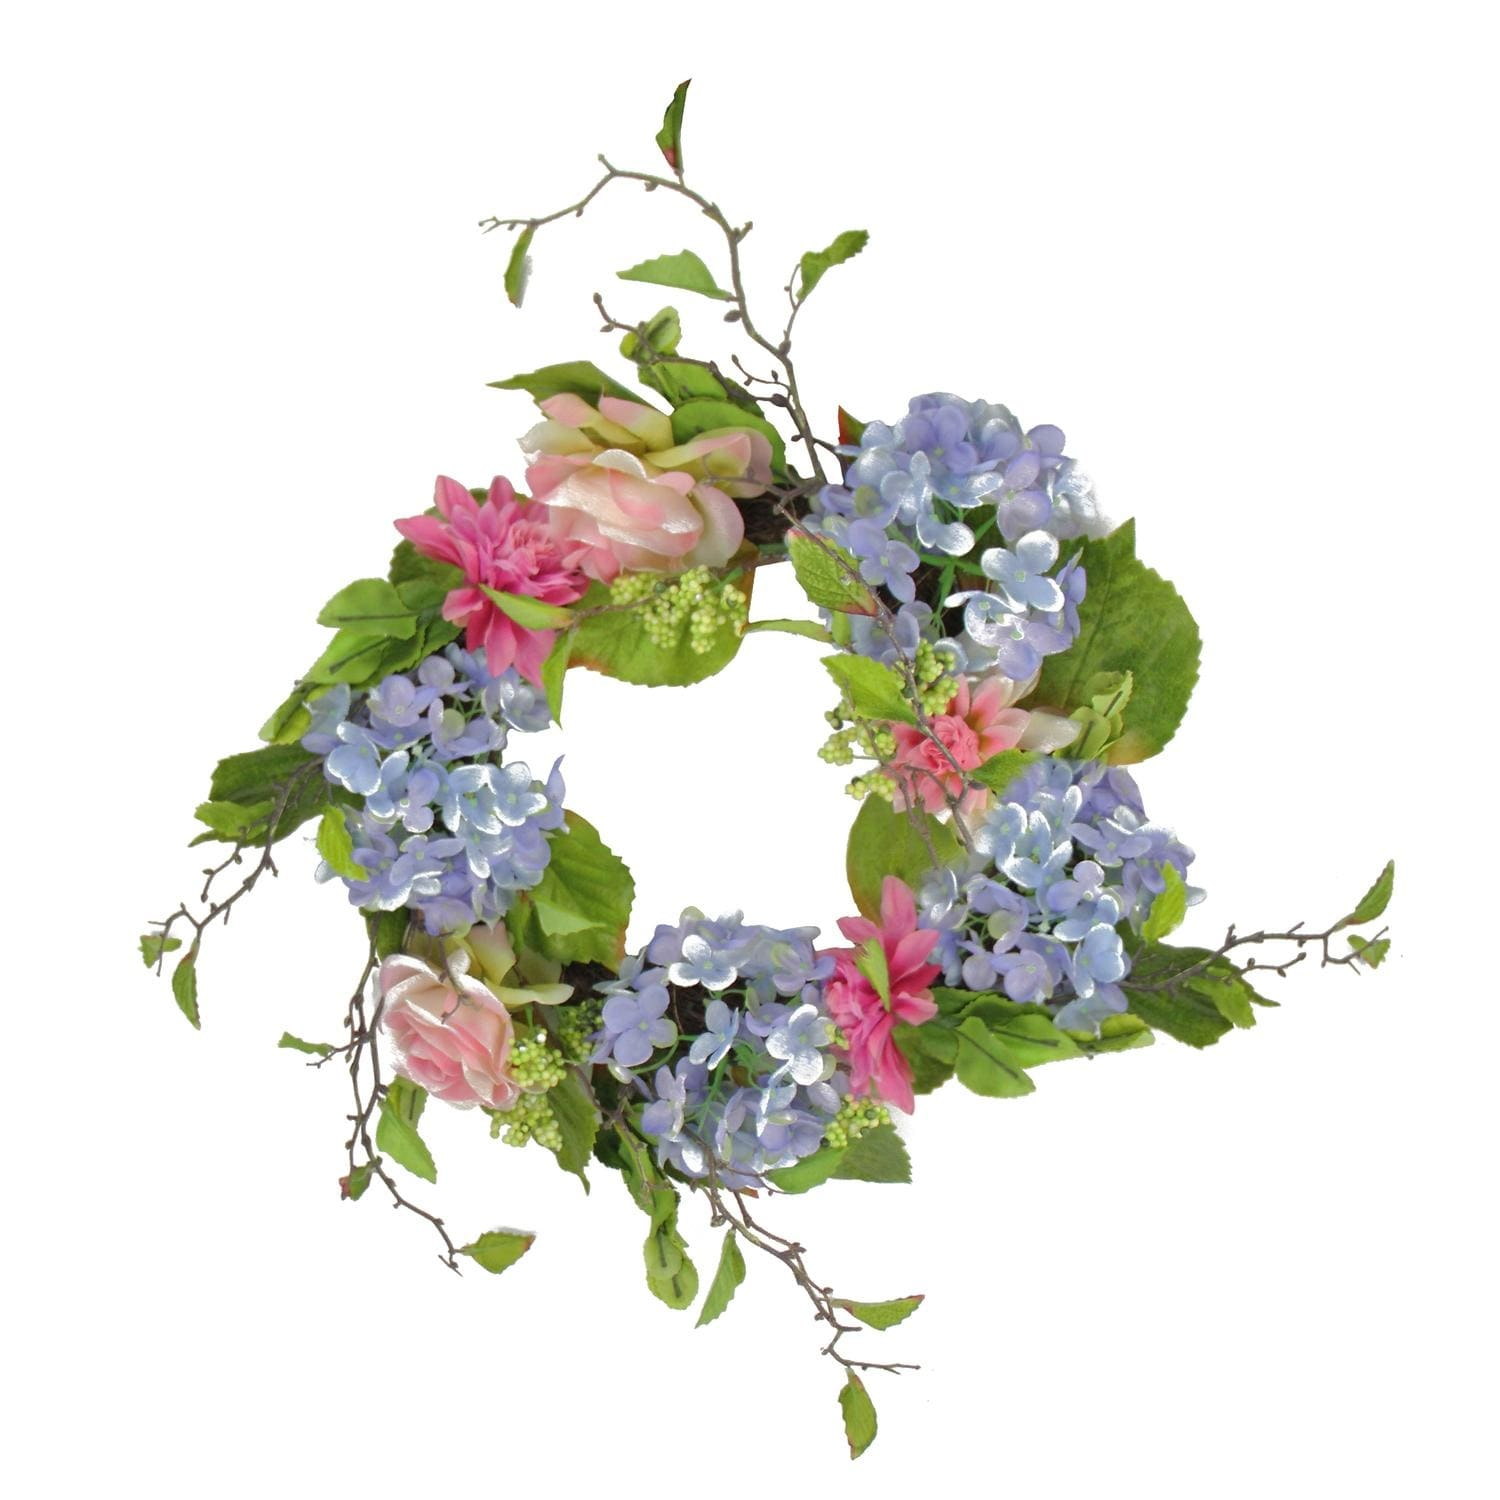 Shop 20 blue and pink rose and hydrangea floral wreath unlit shop 20 blue and pink rose and hydrangea floral wreath unlit free shipping today overstock 16552538 izmirmasajfo